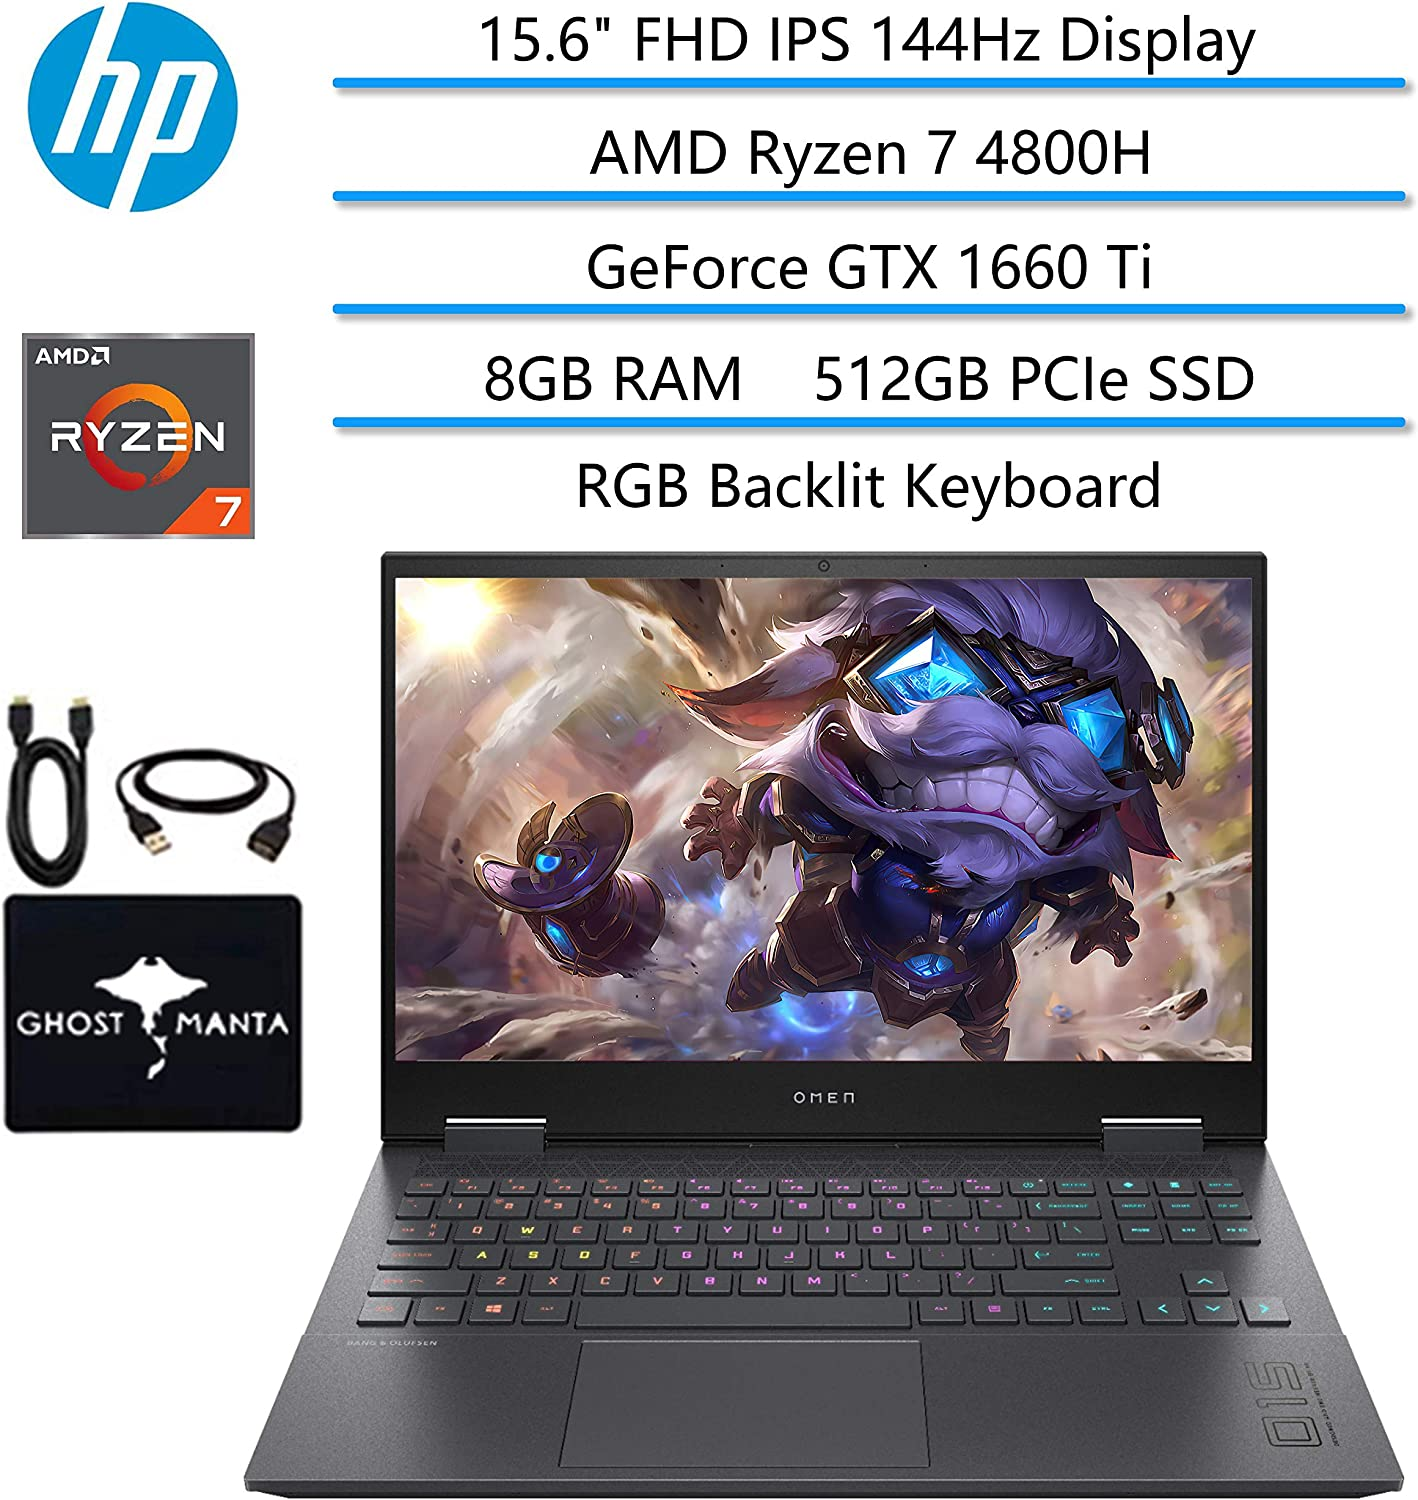 "2020 HP OMEN Gaming Laptop, 15.6"" FHD IPS 144Hz, AMD Ryzen 7 4800H 8-core(Beat i7-9850H), GeForce GTX 1660 Ti, 8GB RAM, 512GB PCIe NVMe SSD, RGB Backlit Keyboard, WiFi 6, w/GM Accessories"